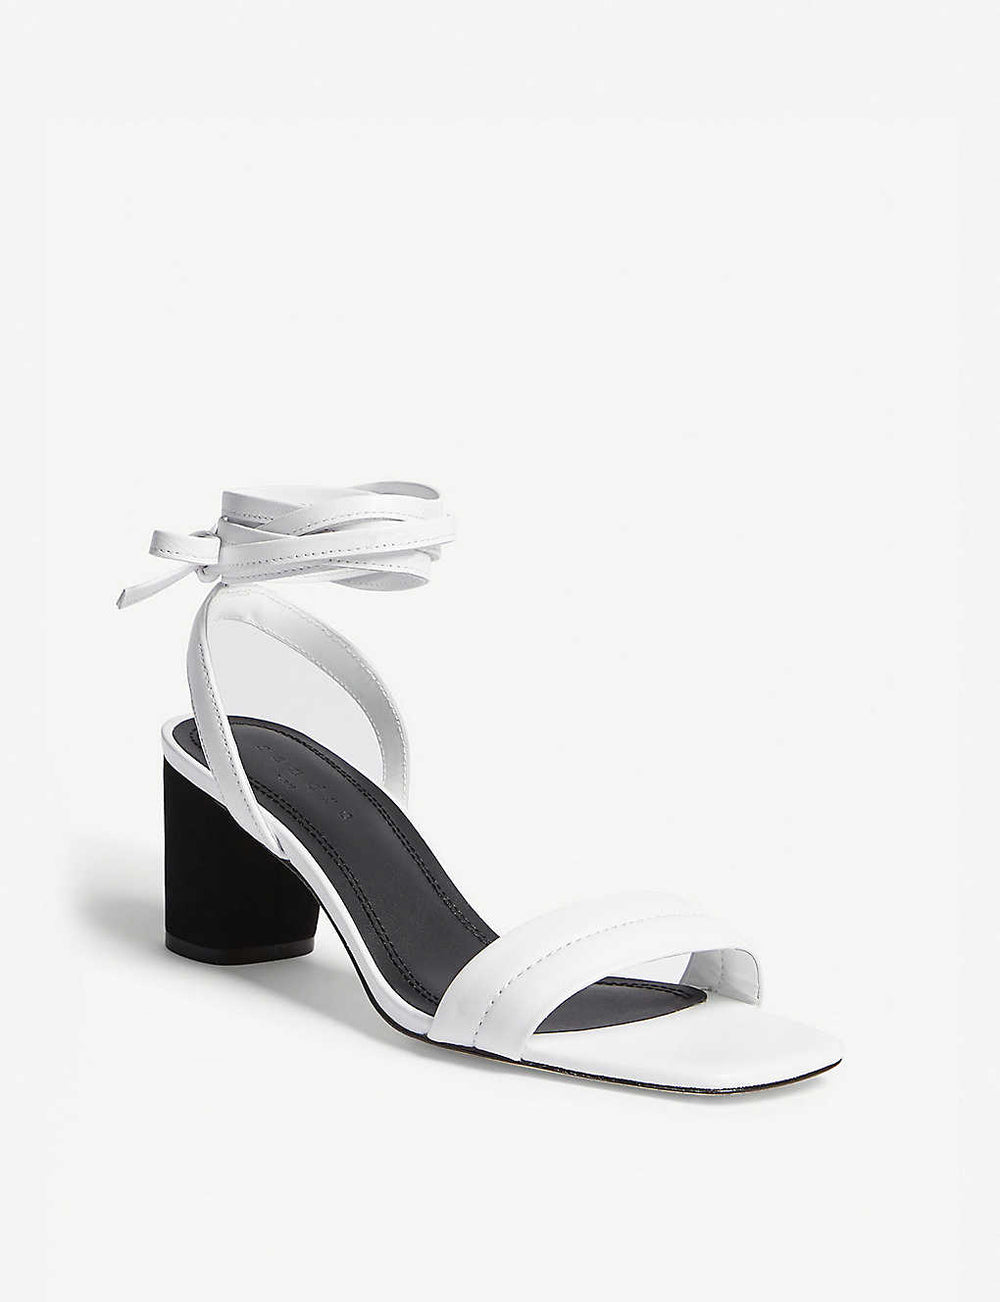 Sandro lauren leather heeled sandals NIB